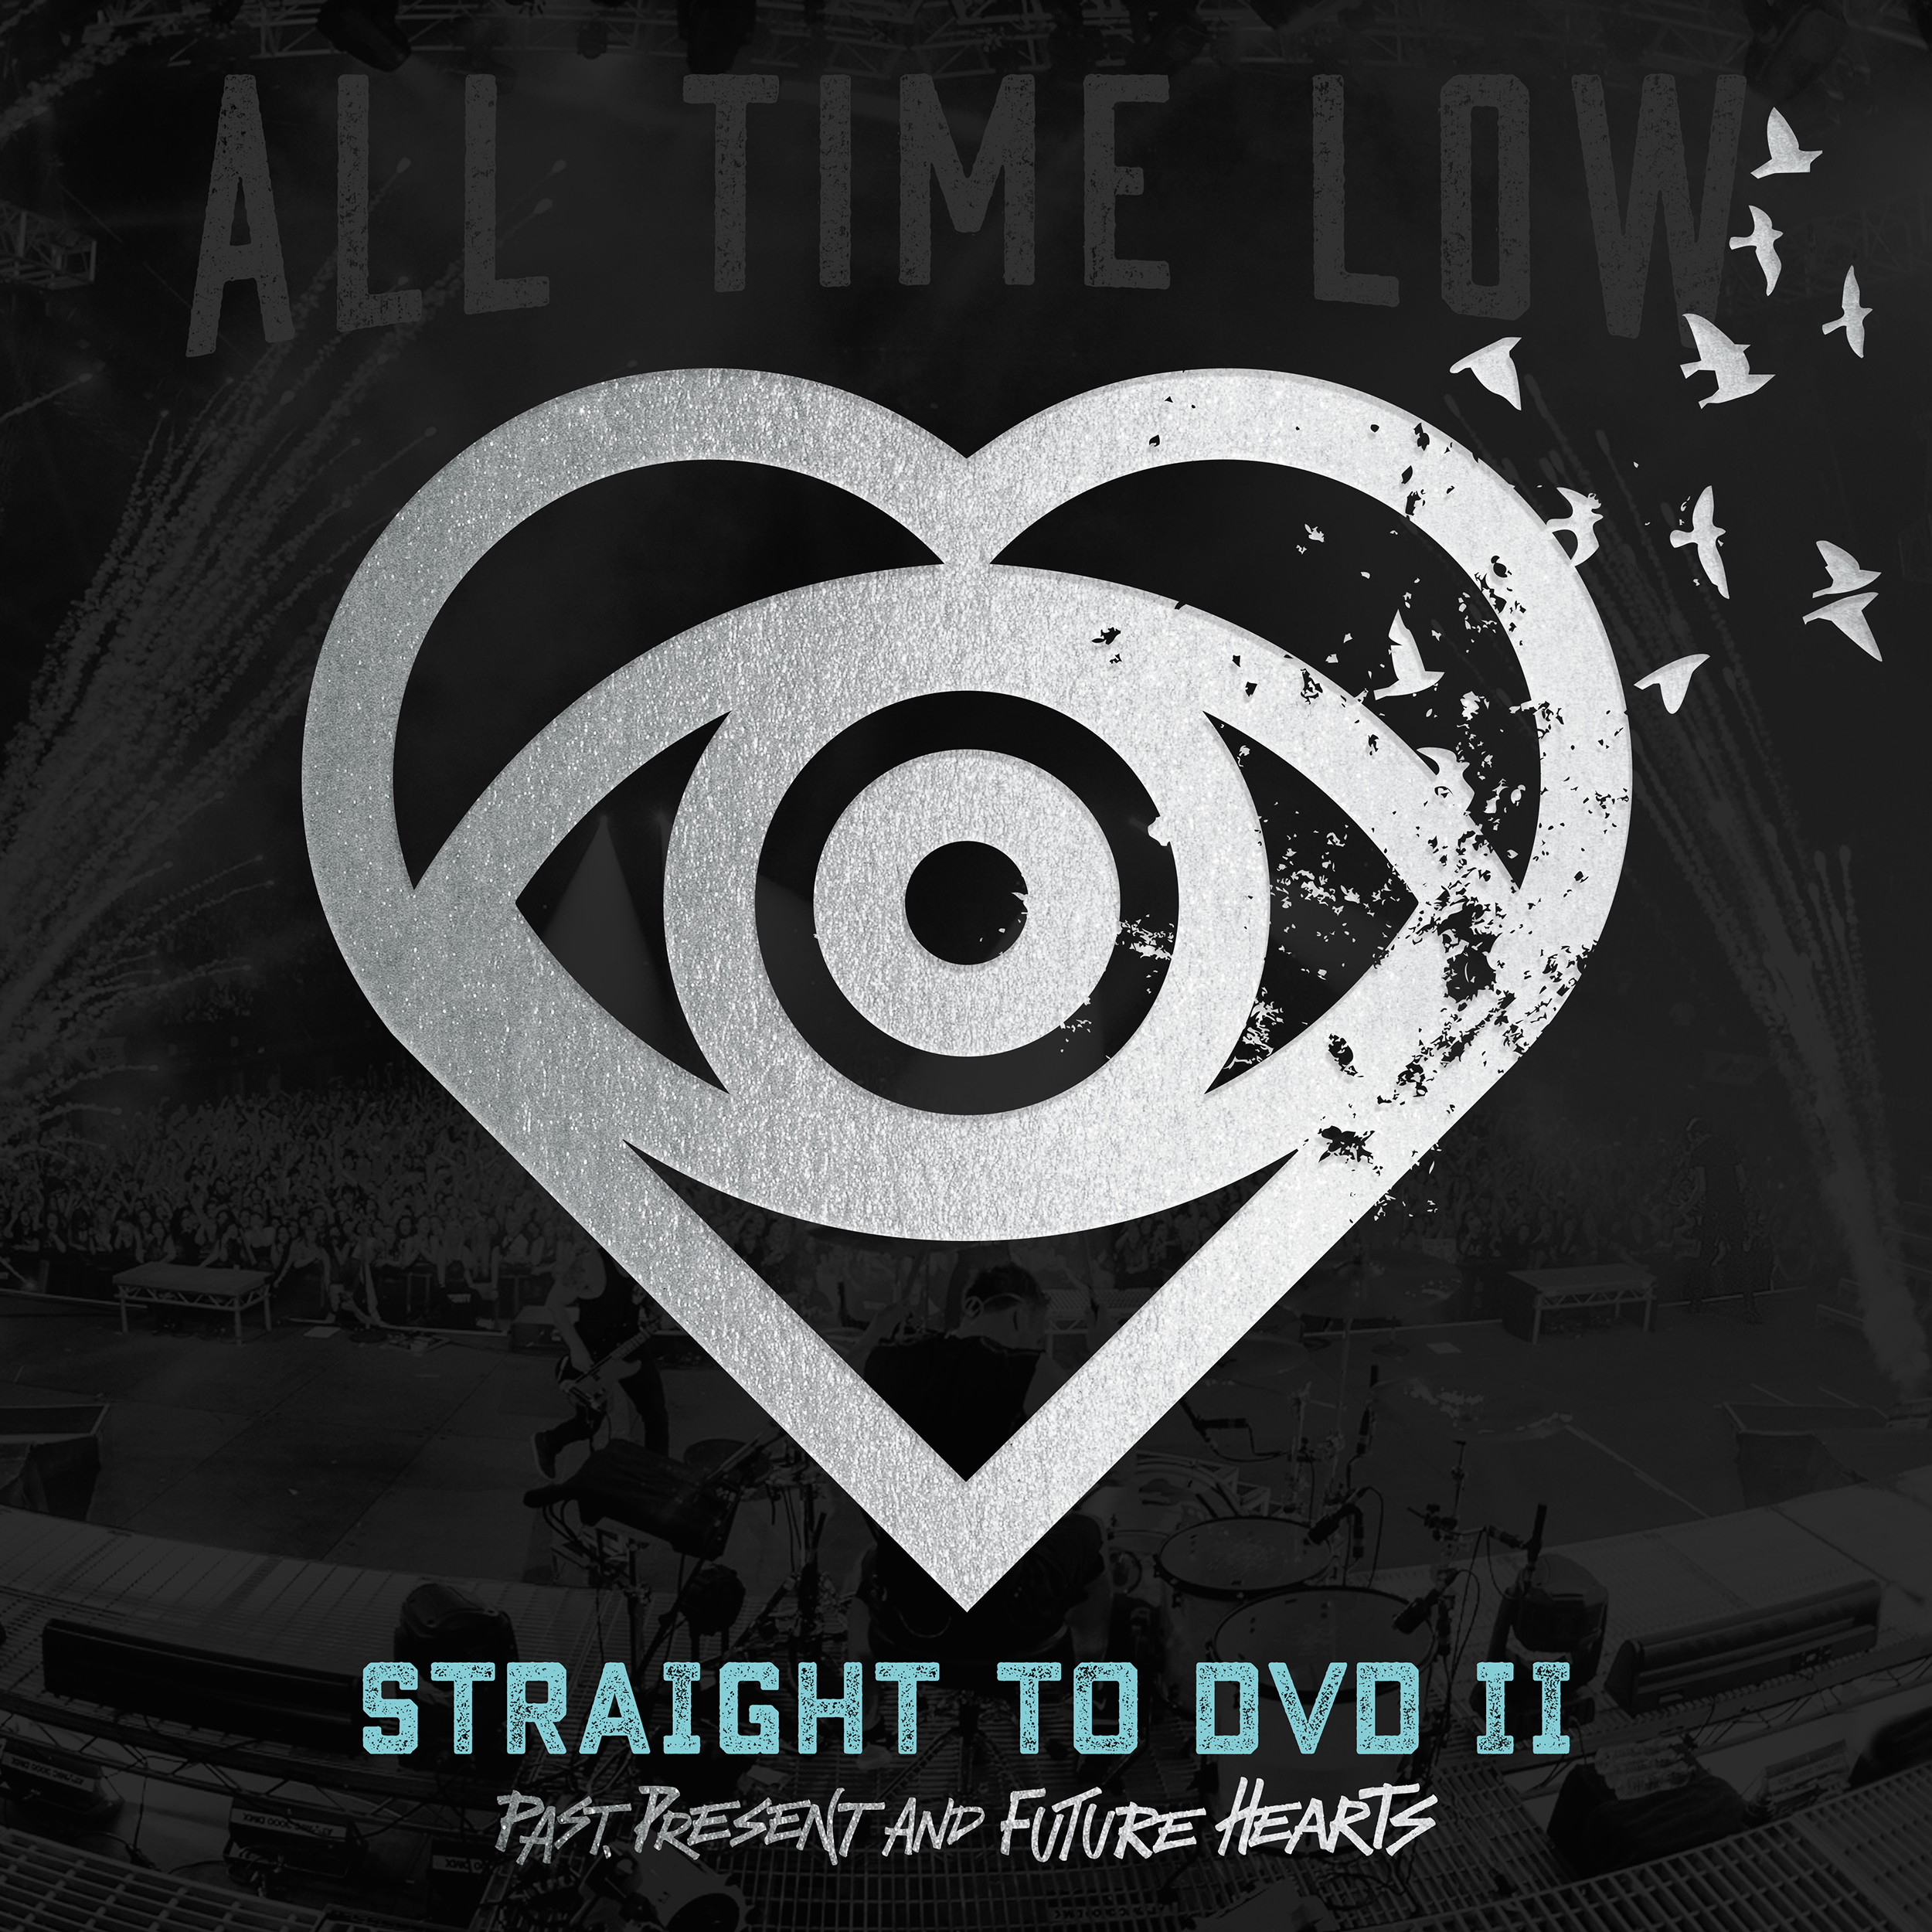 All Time Low - Straight To DVD II